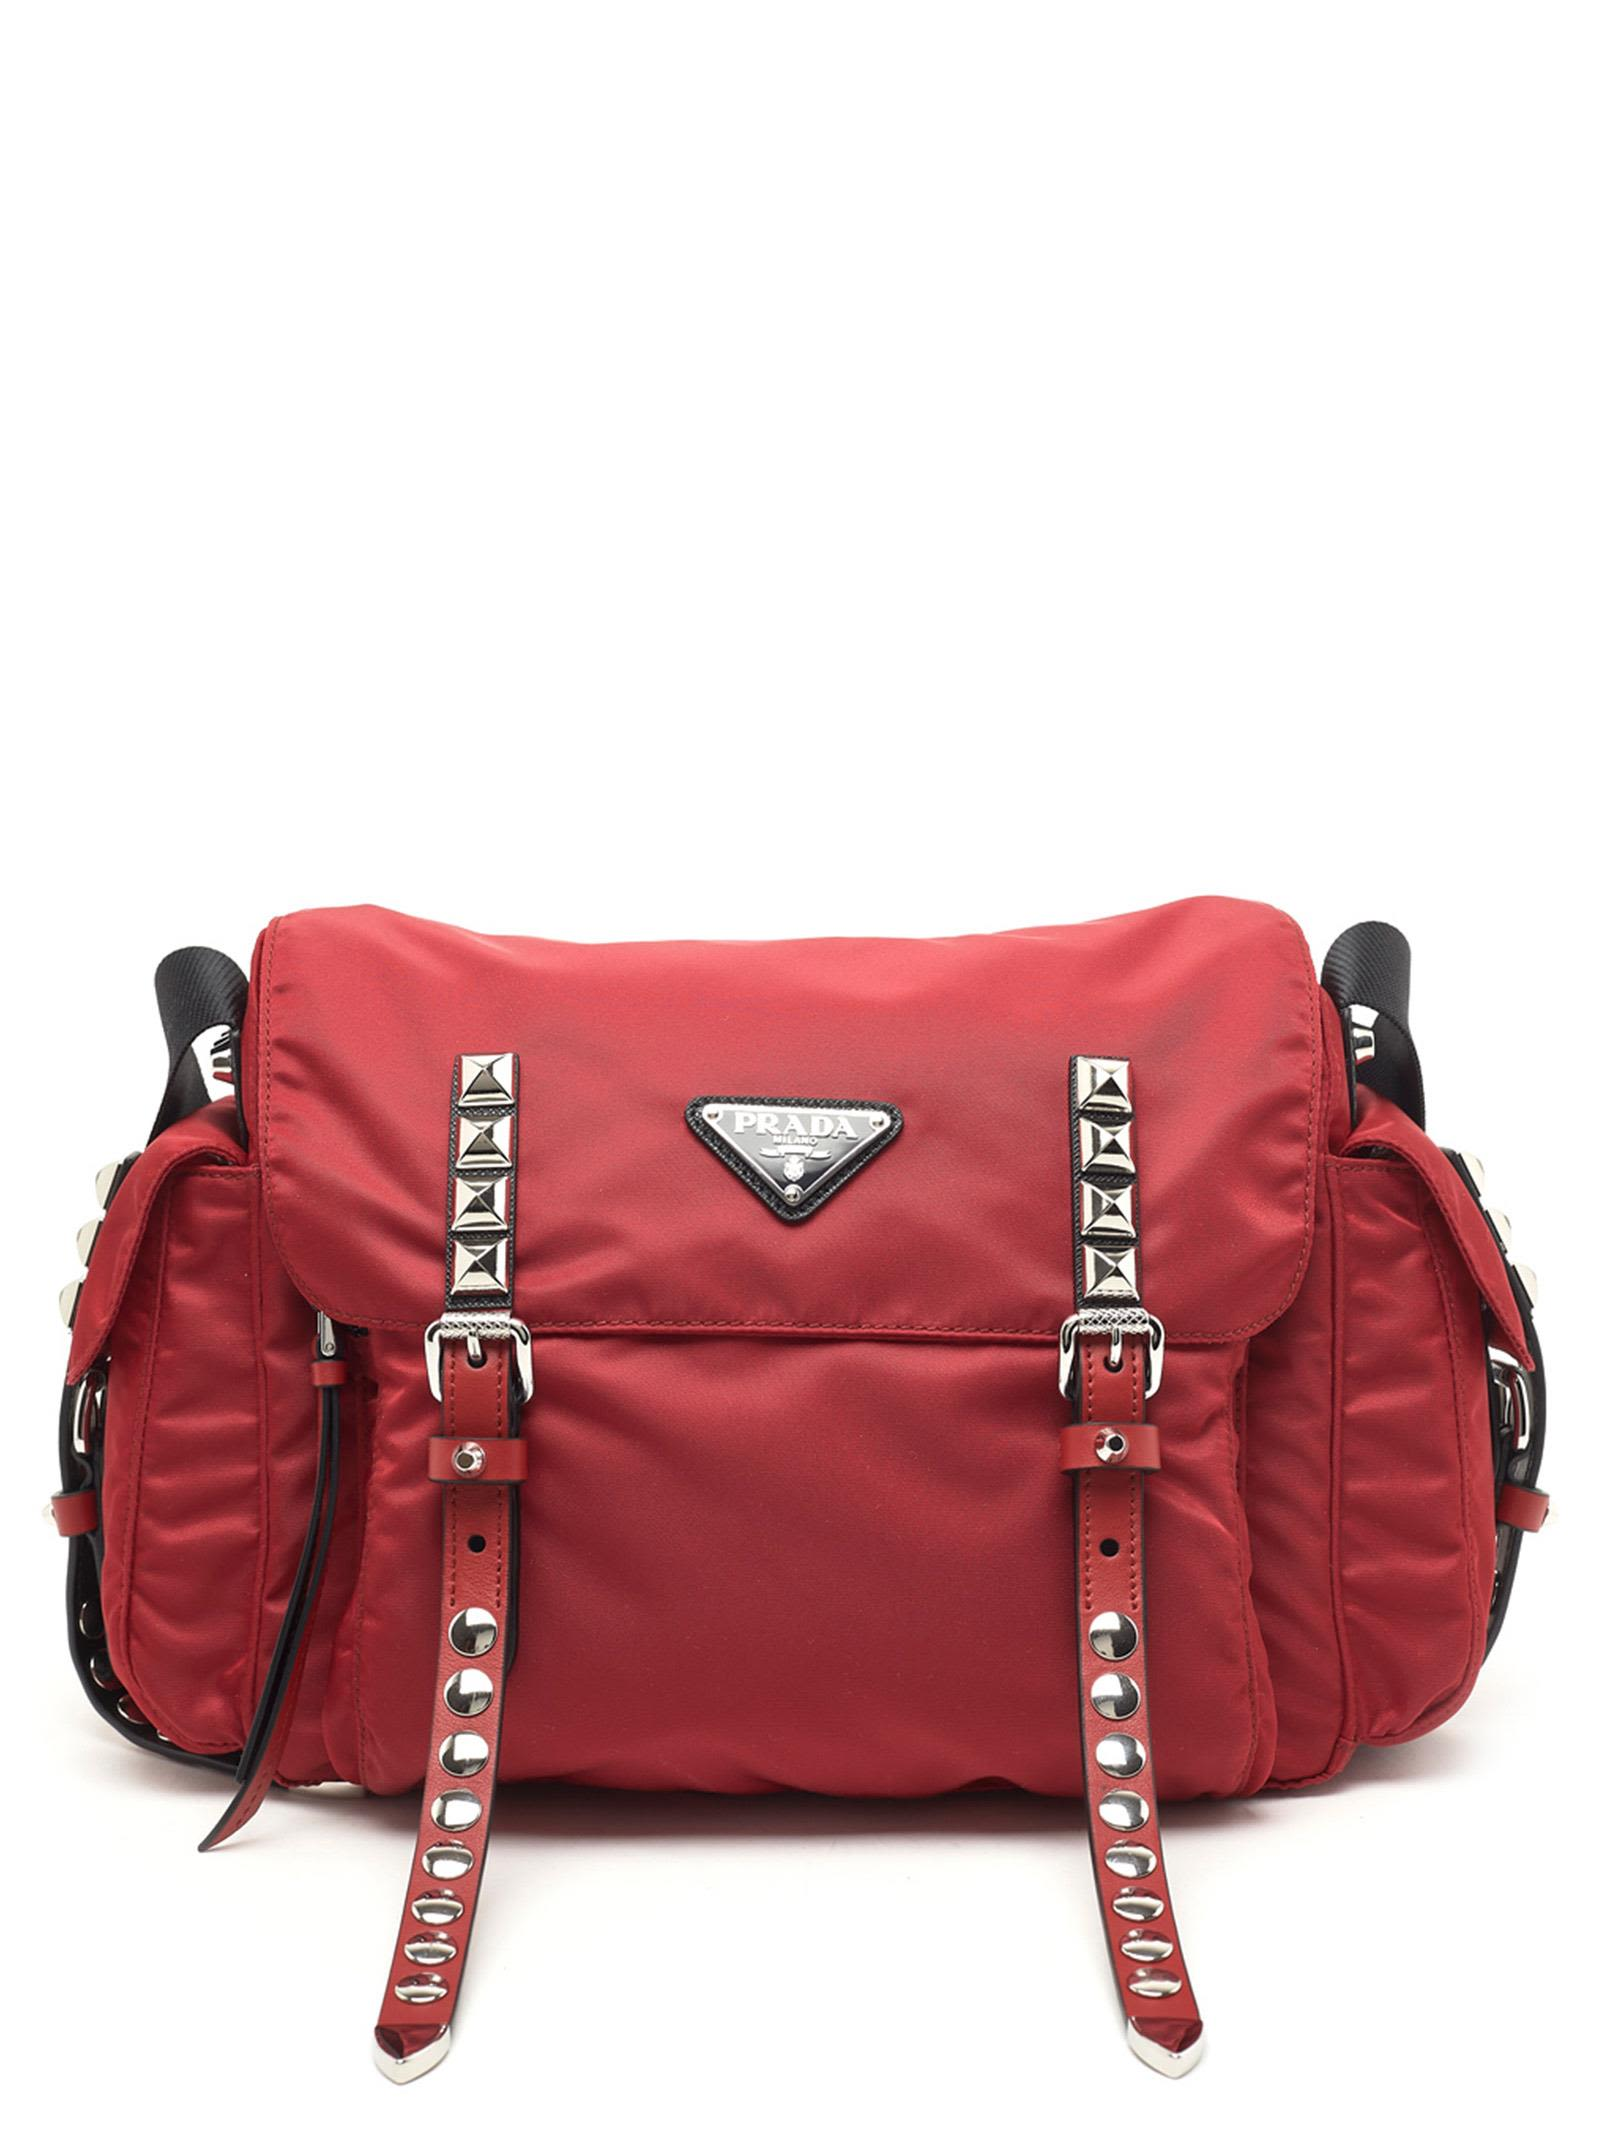 ef3411310c ... promo code for prada messenger bag red. hover to zoom 70e04 1d764